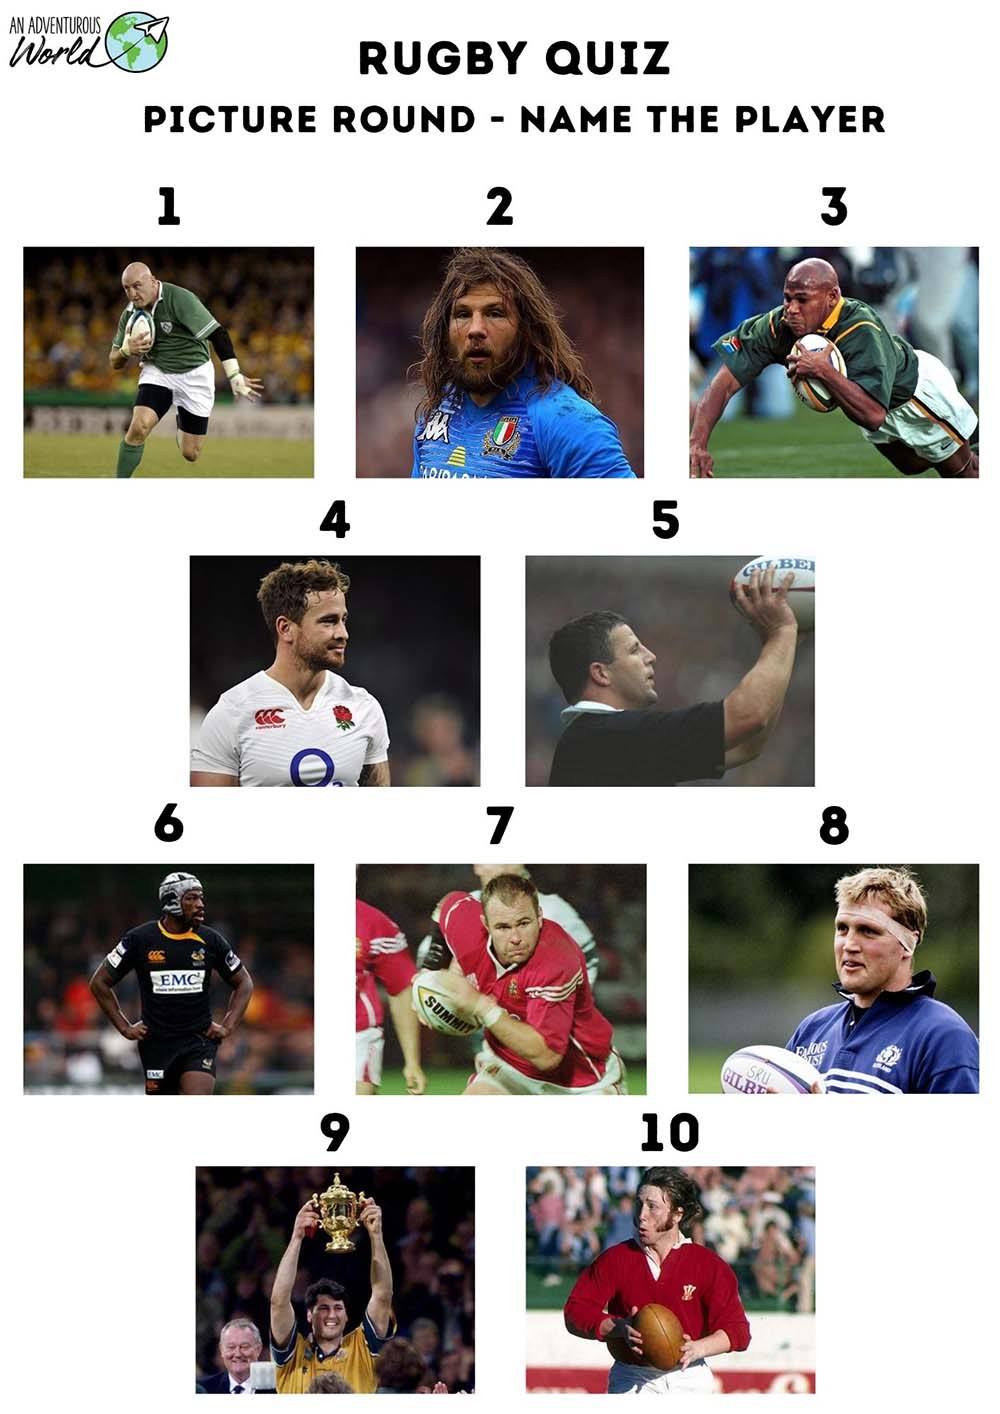 rugby players quiz